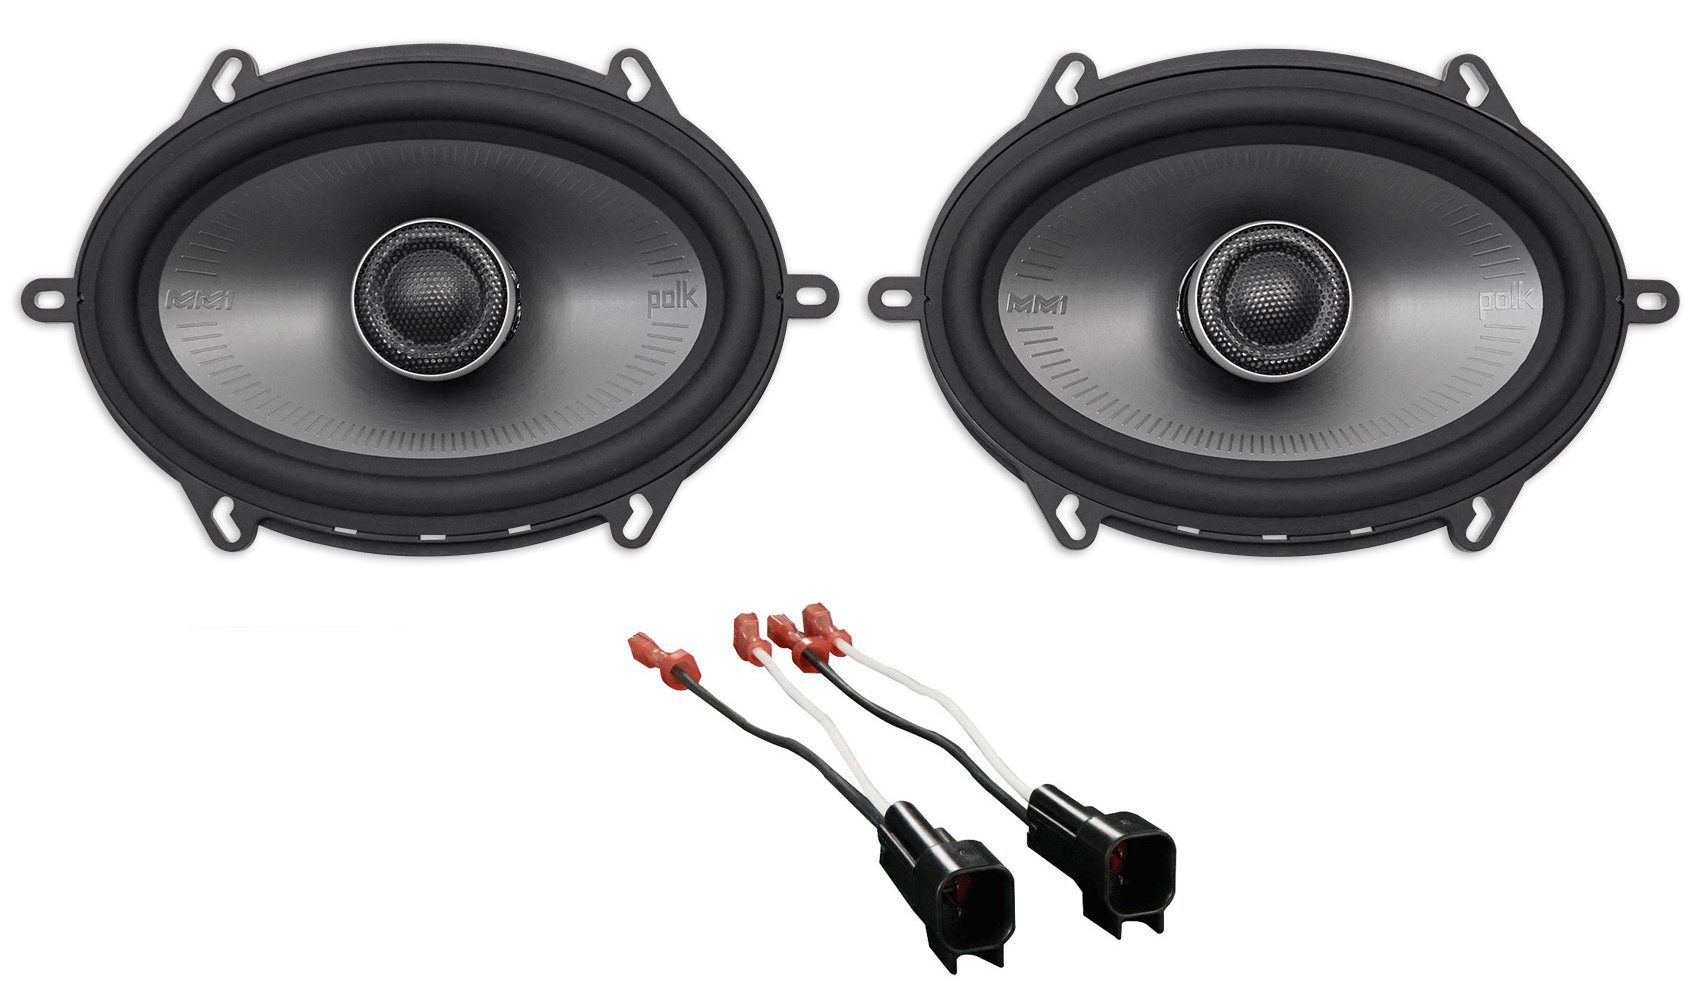 2011-2015 Ford F-650/750 Polk 5x7'' Front Factory Speaker Replacement Kit